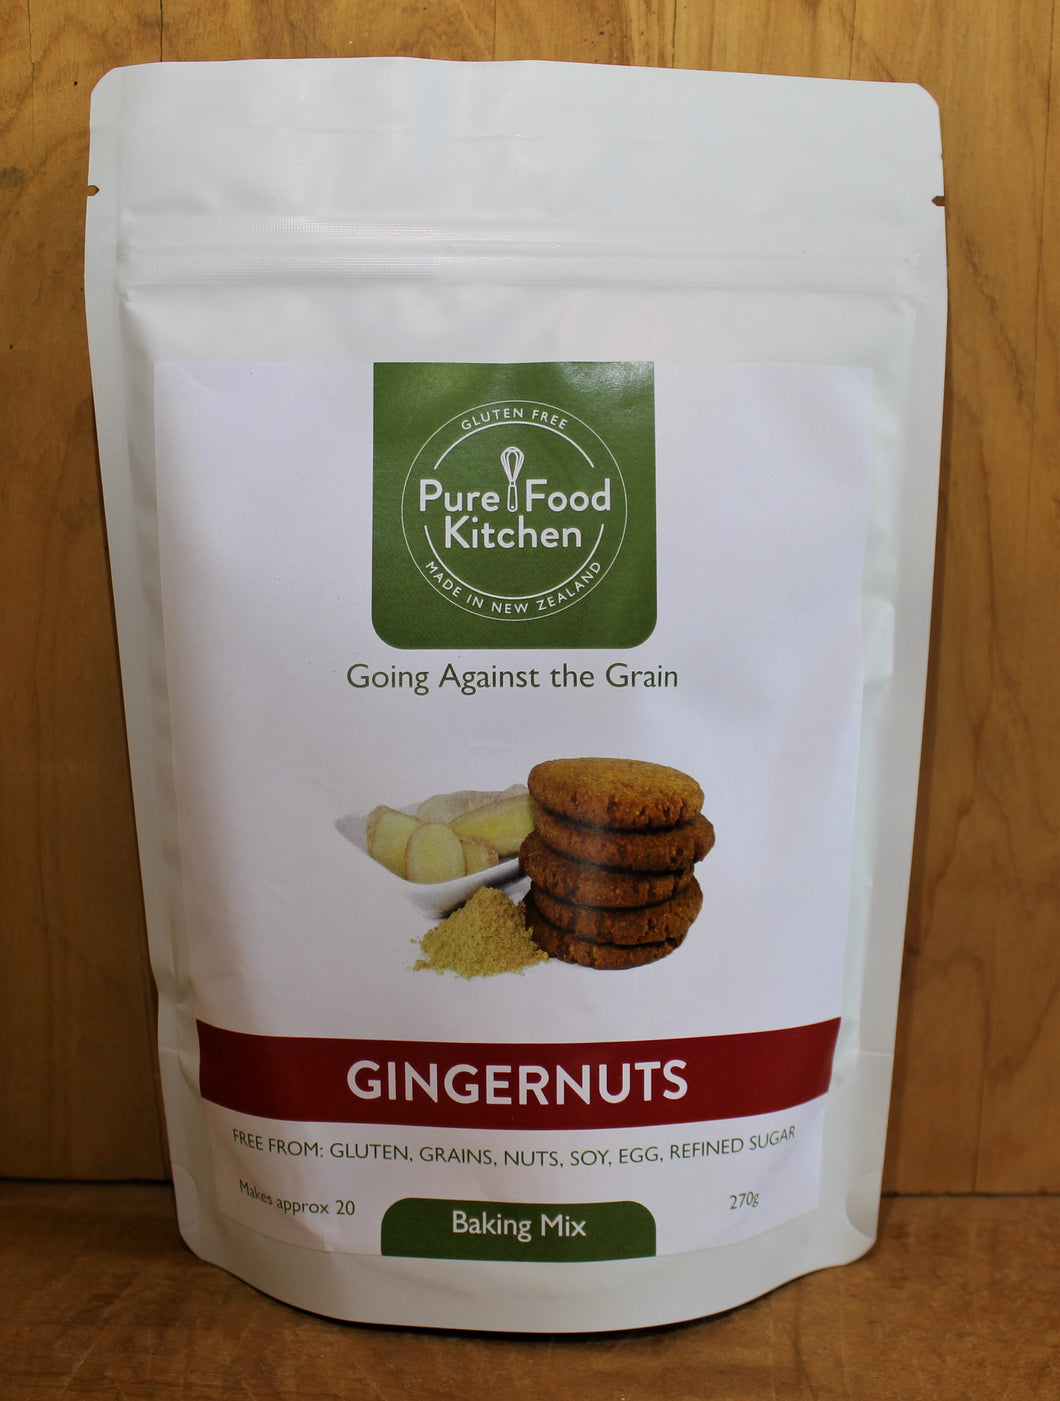 BAKING MIX GINGERNUTS 270g